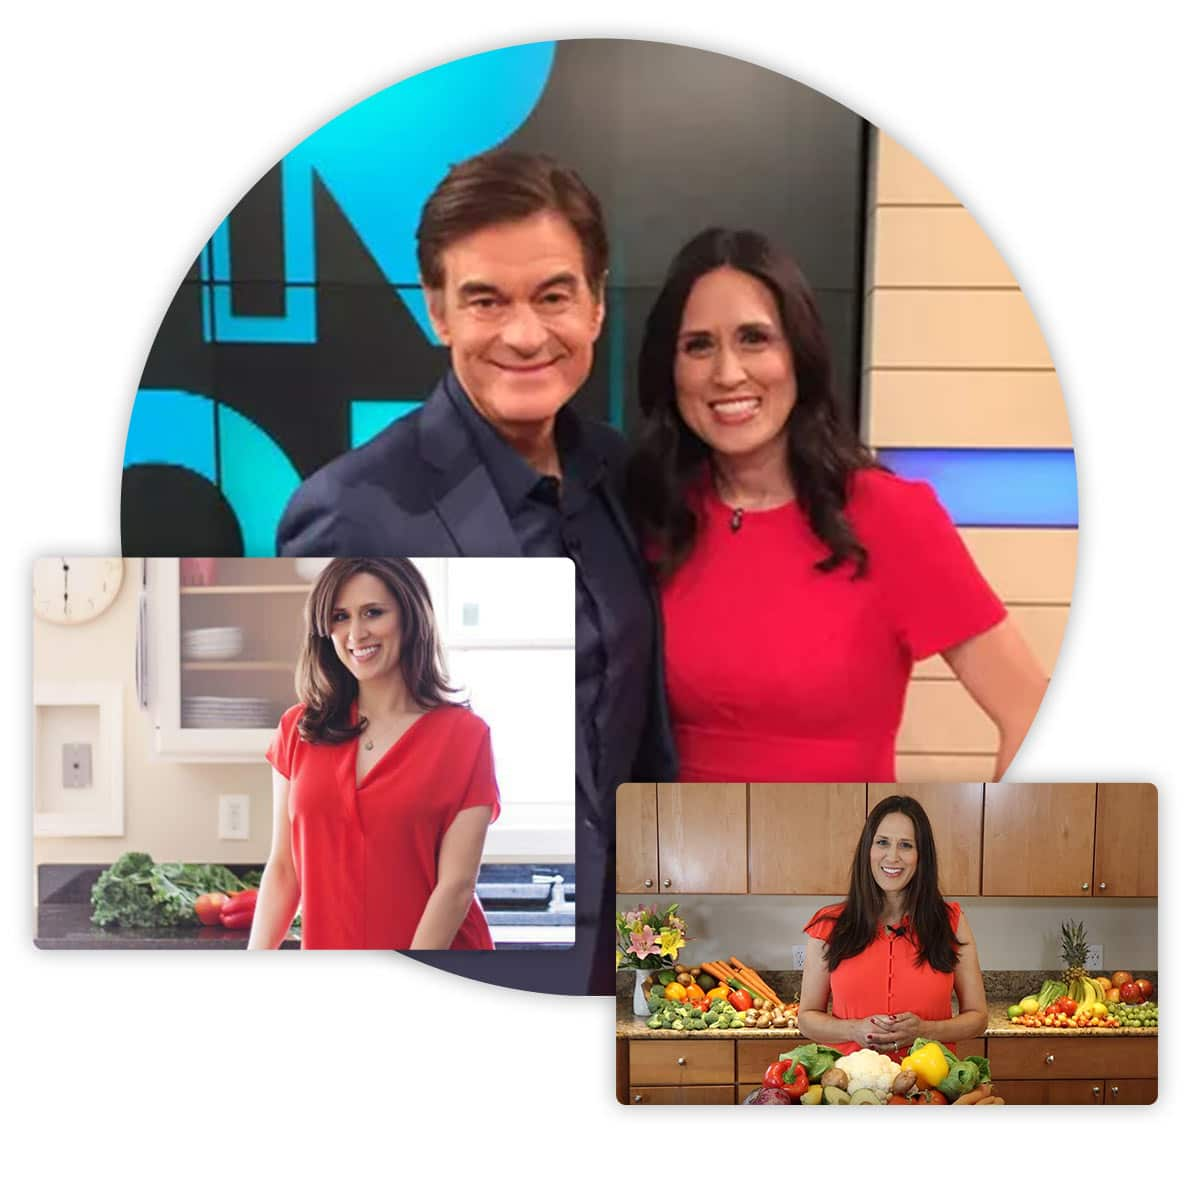 Kristin Kirkpatrick, MS, RD, LD, Chief Nutrition Officer, Gene Food with Dr. Oz